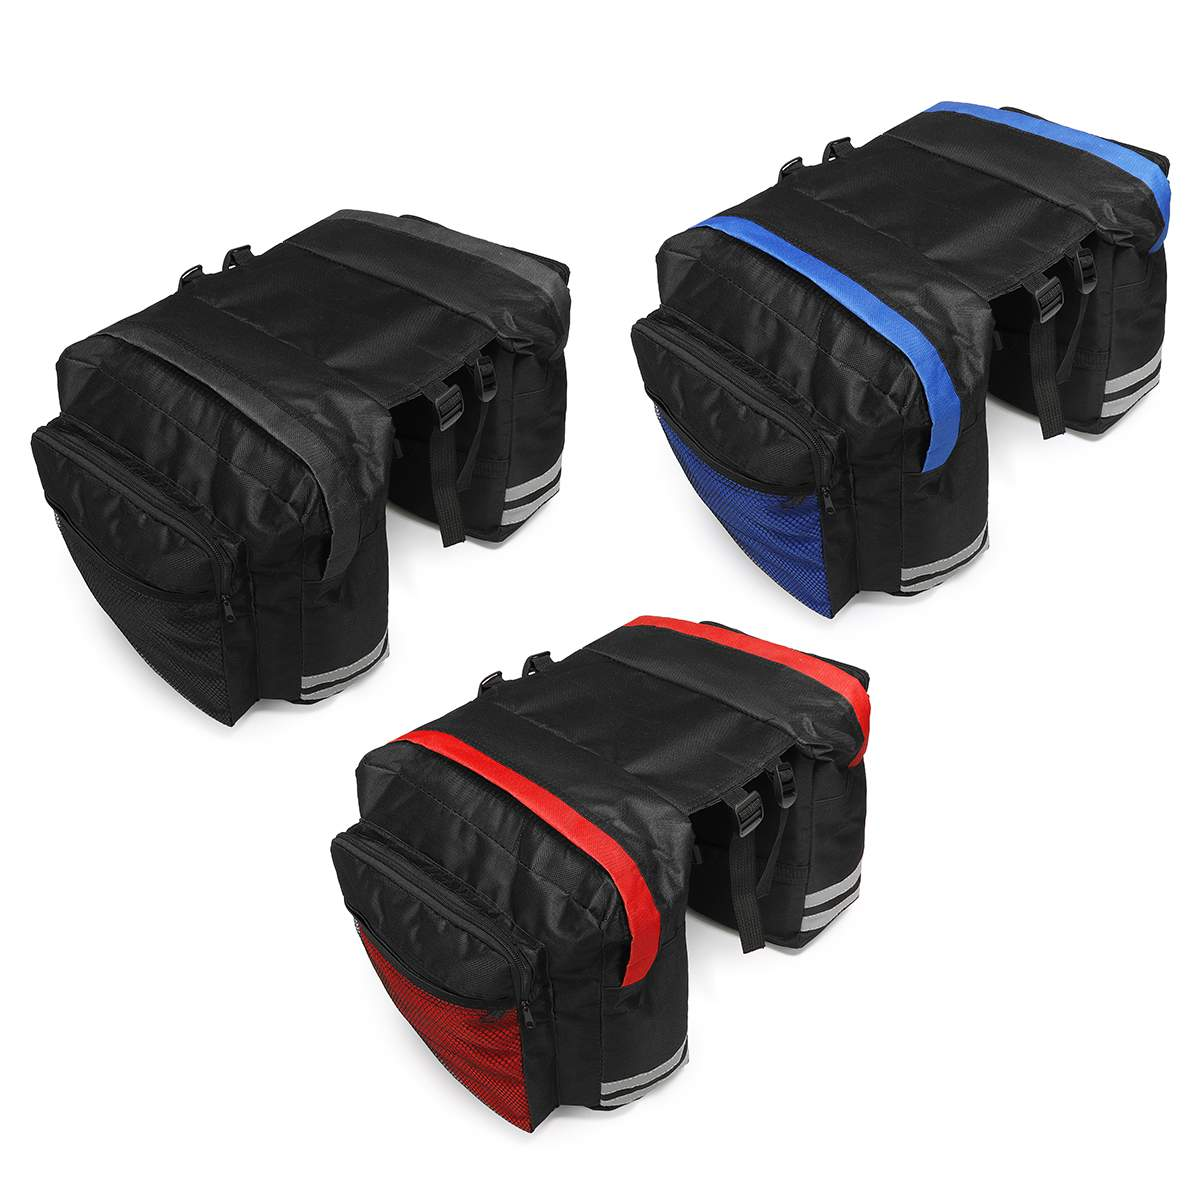 20L Bicycle Rear Rack Seat Saddle Bag Cycling Bike Pannier Tail Storage